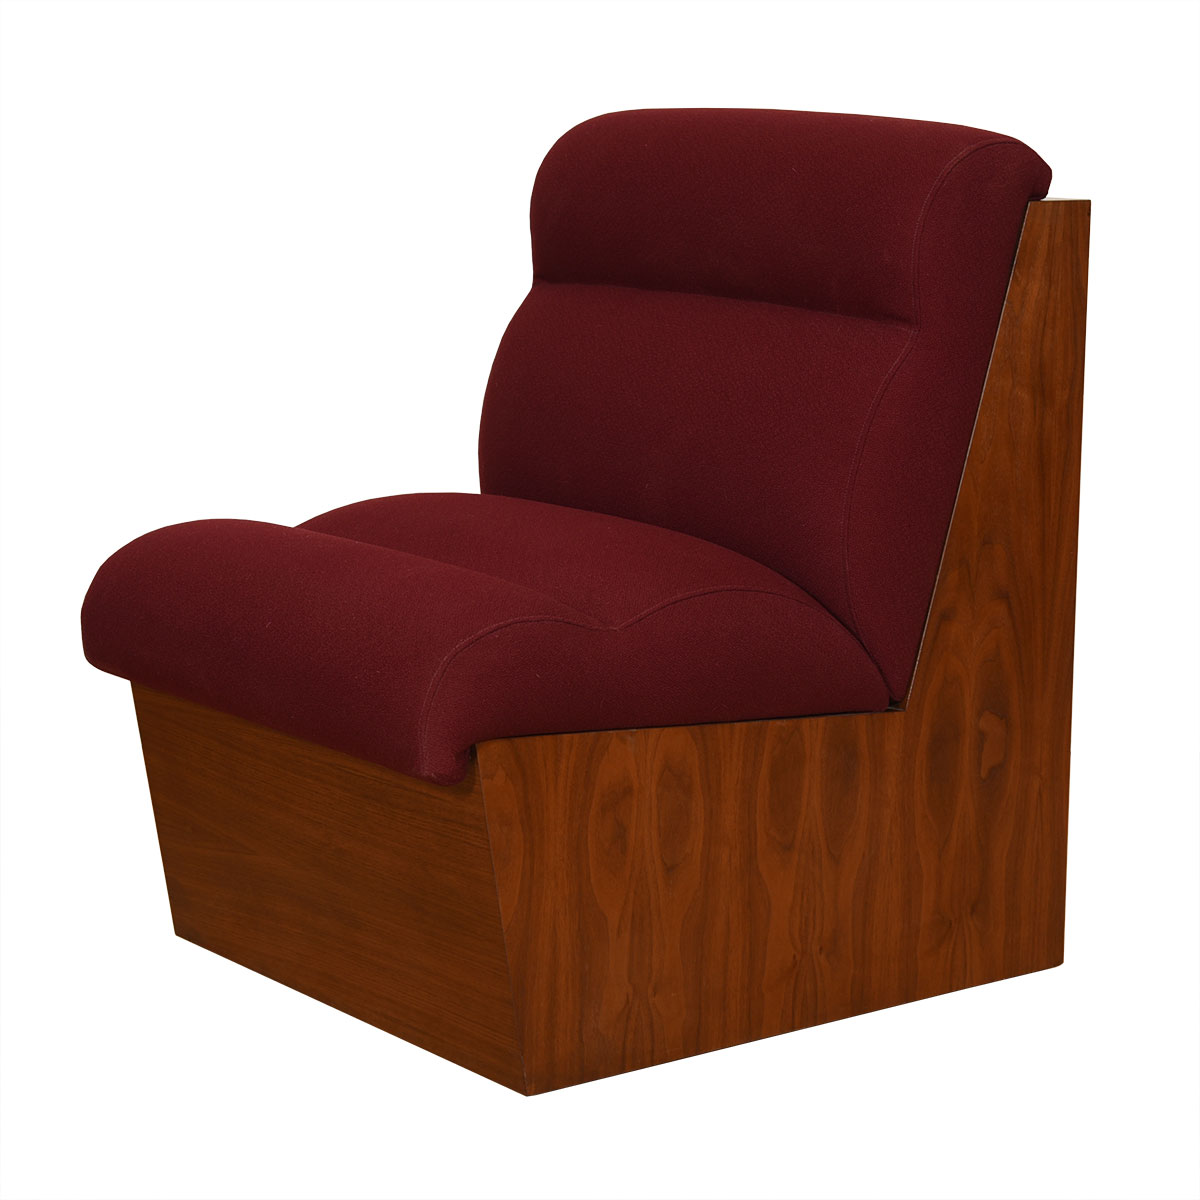 Cubist Walnut Occasional Chair a Modernist Commissioned Chair